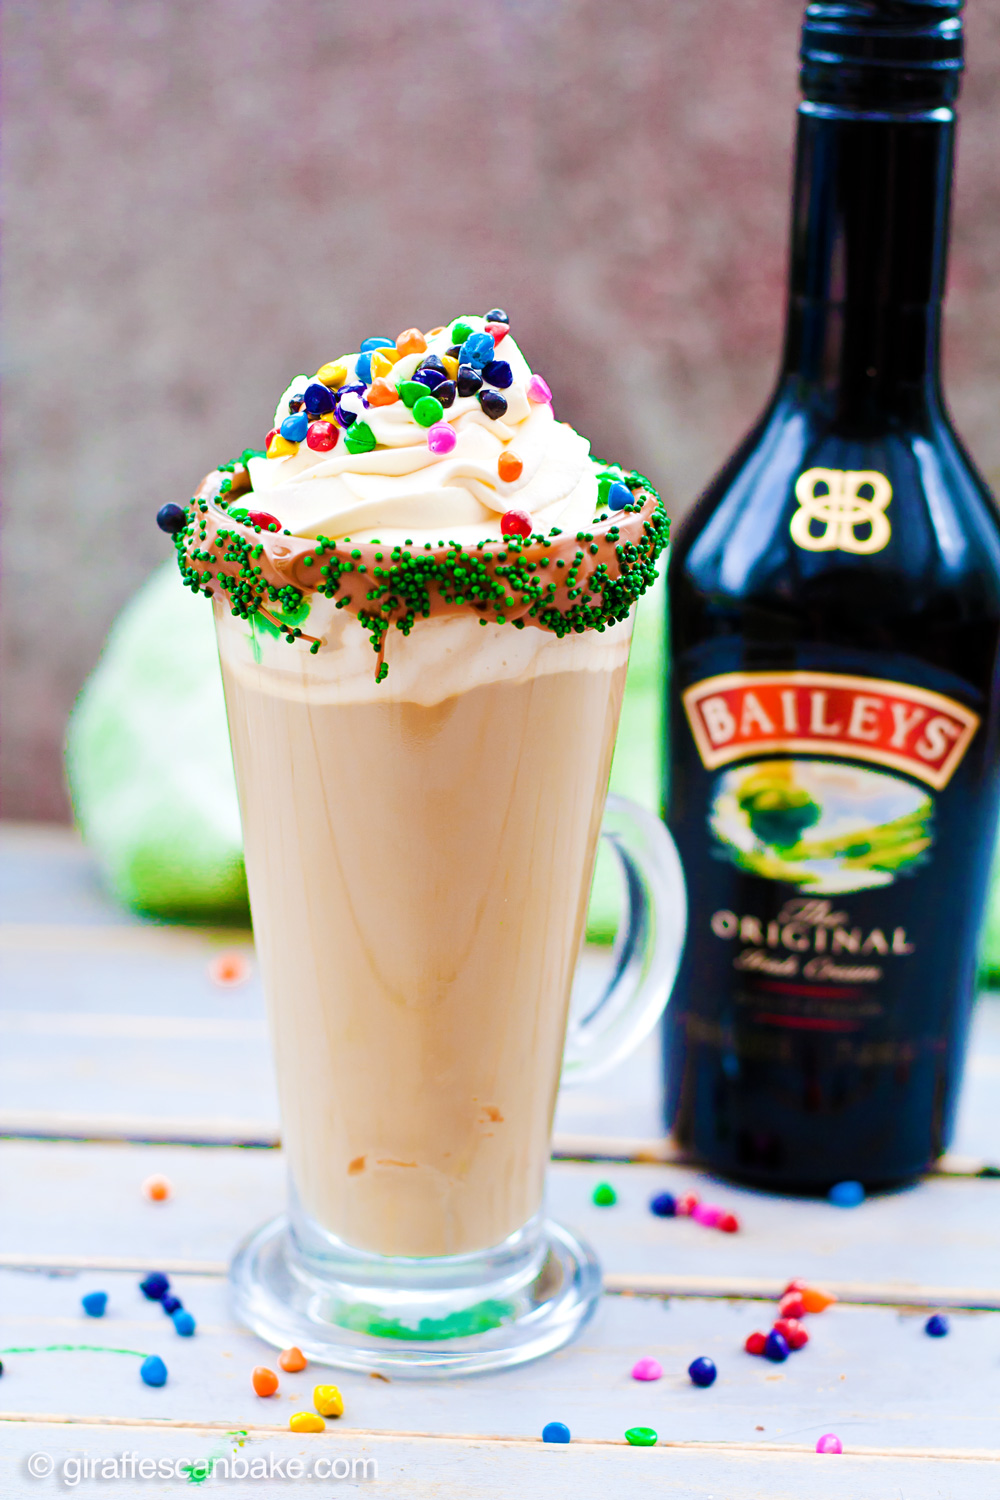 Mint Irish Latte - Put a little luck of the Irish in your morning coffee with this Mint Irish Latte. Crème de Menthe is combined with Baileys Irish Cream in a chocolate and sprinkles rimmed glass, rich espresso and frothy milk is then poured over the top. Add some vanilla whipped cream and rainbow sprinkles to finish it off with a touch of magic! The best way to drink coffee this St Patrick's Day!